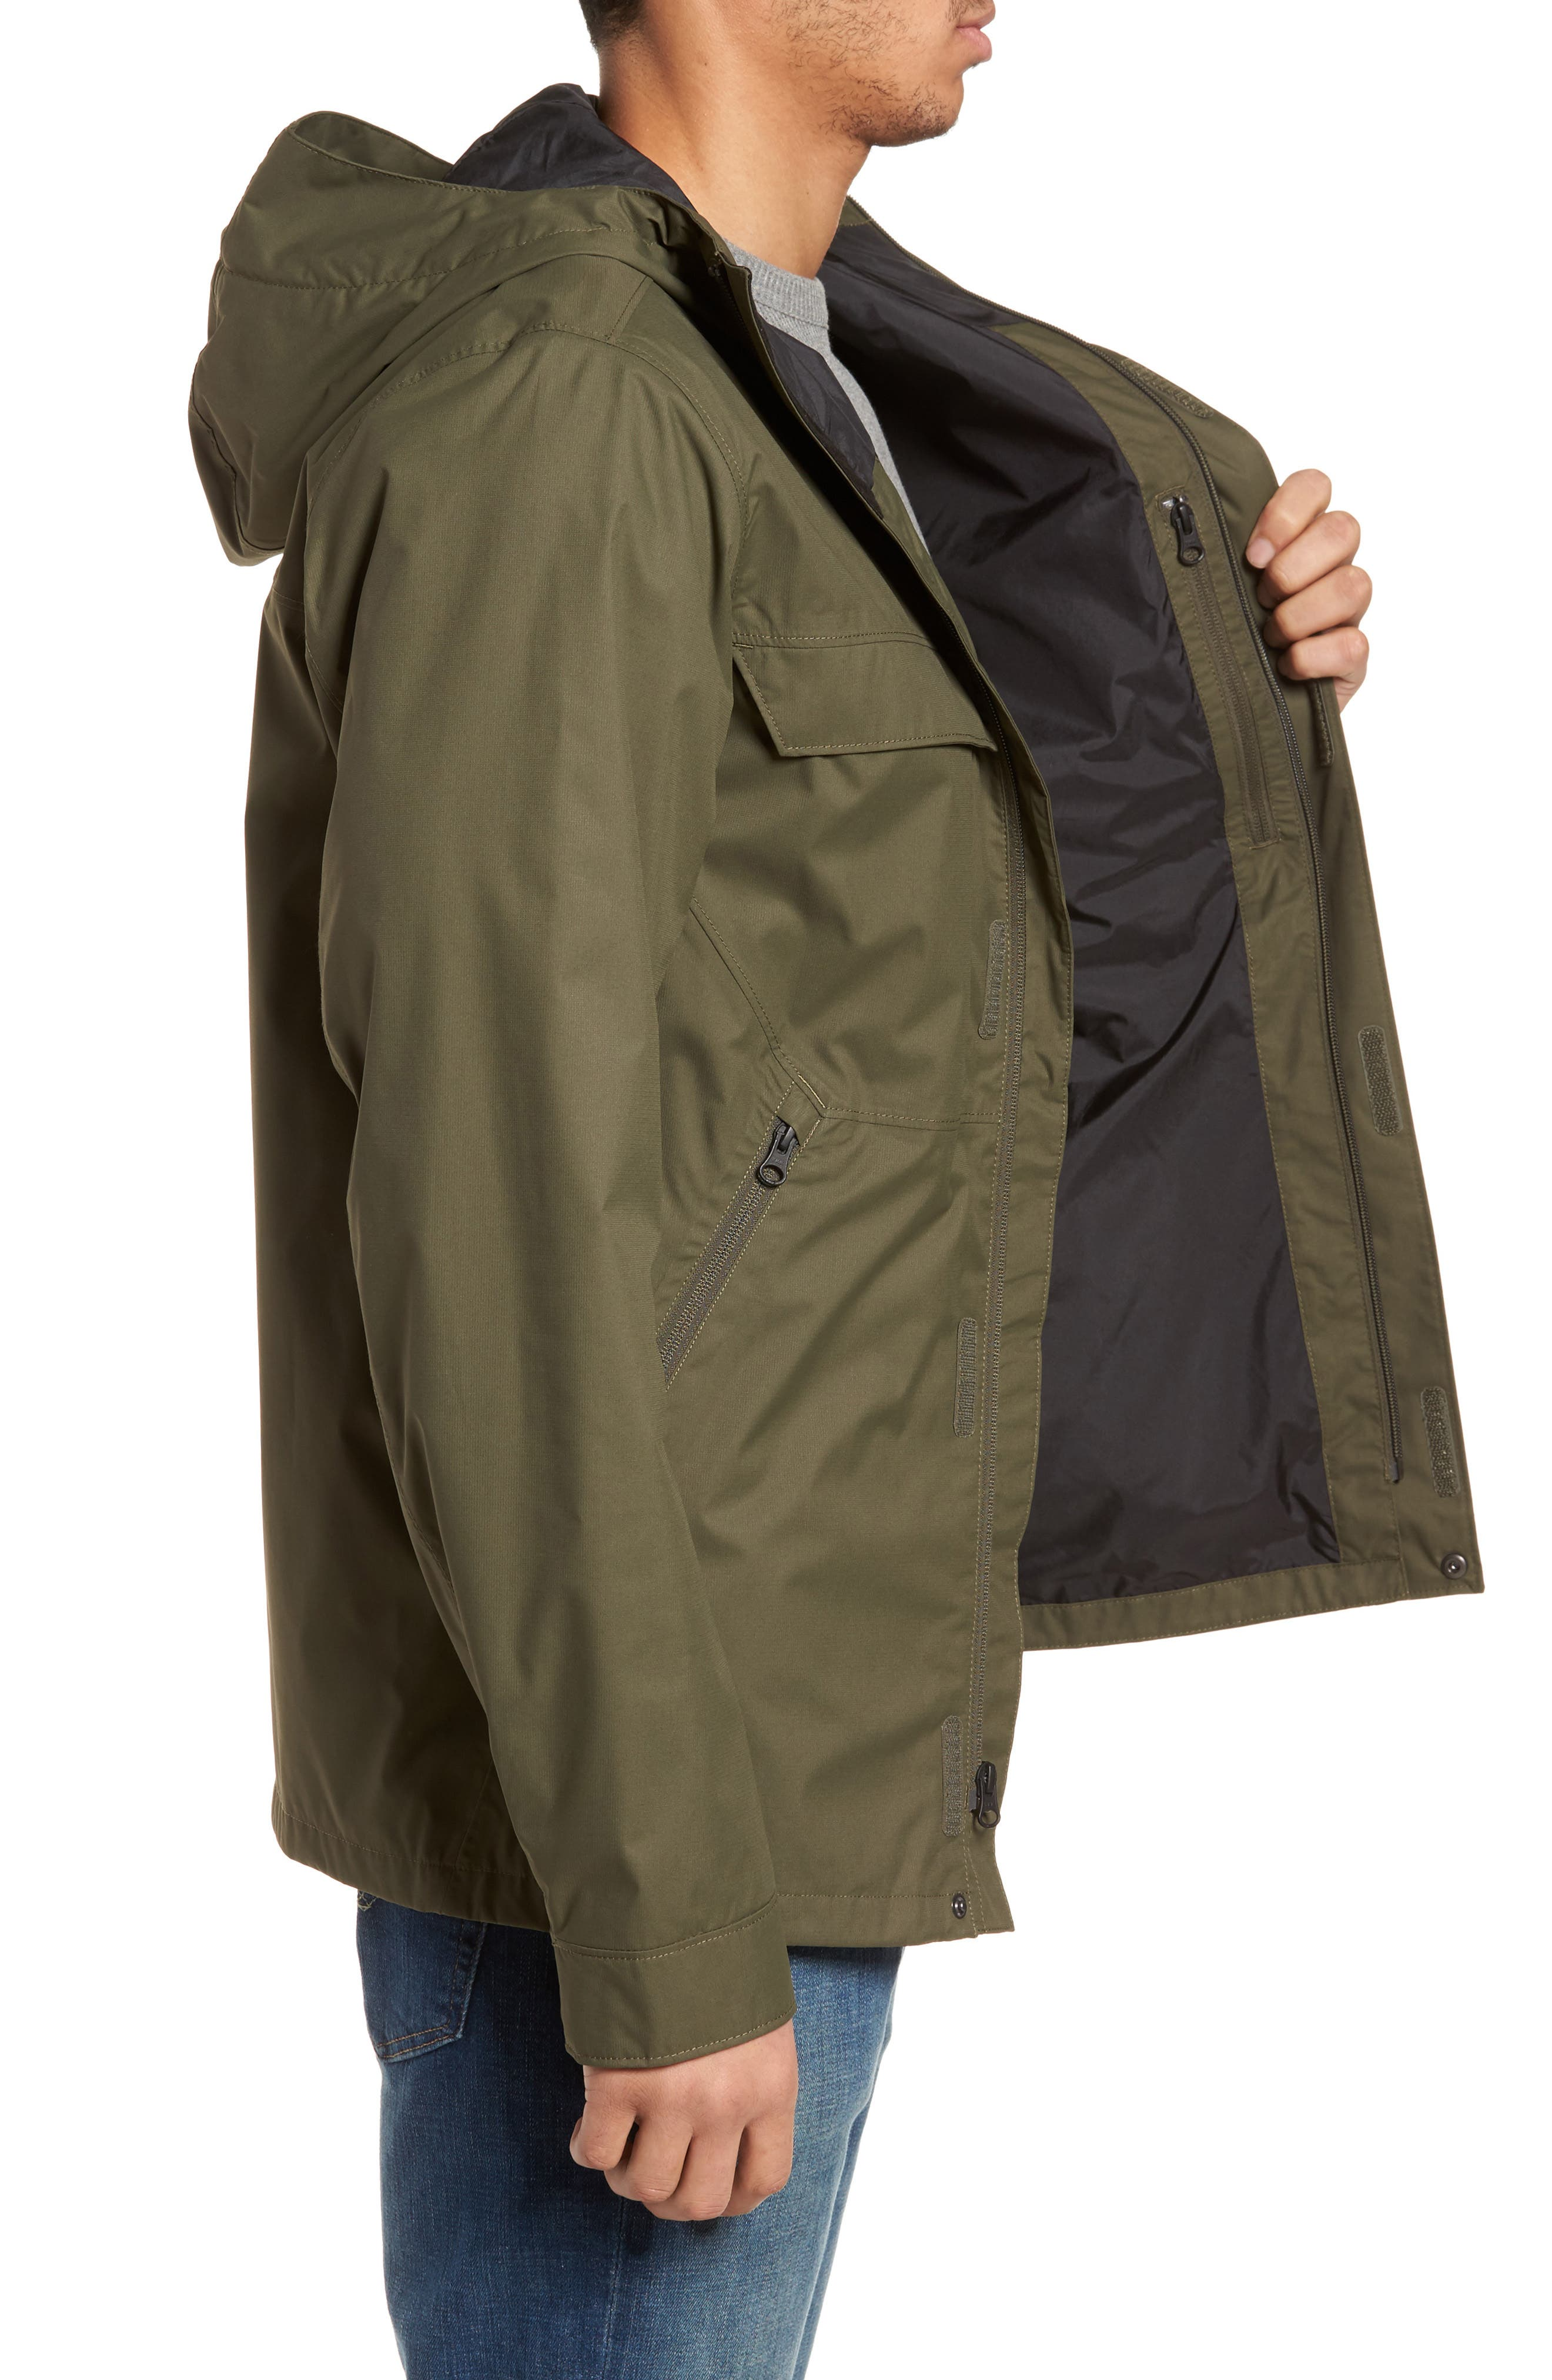 Jenison II Insulated Waterproof Jacket,                             Alternate thumbnail 3, color,                             New Taupe Green